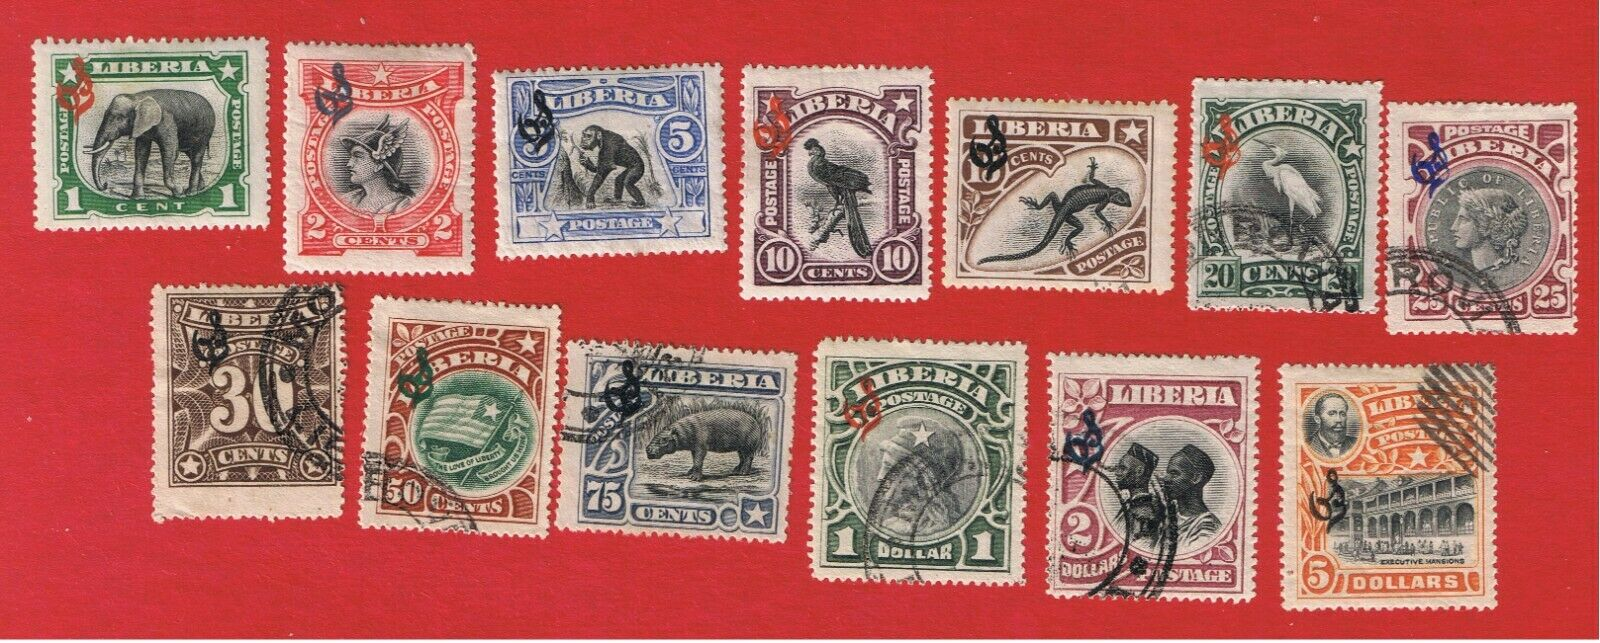 Liberia O46-O58 VF Used Official Stamps Free S/H - $4.69